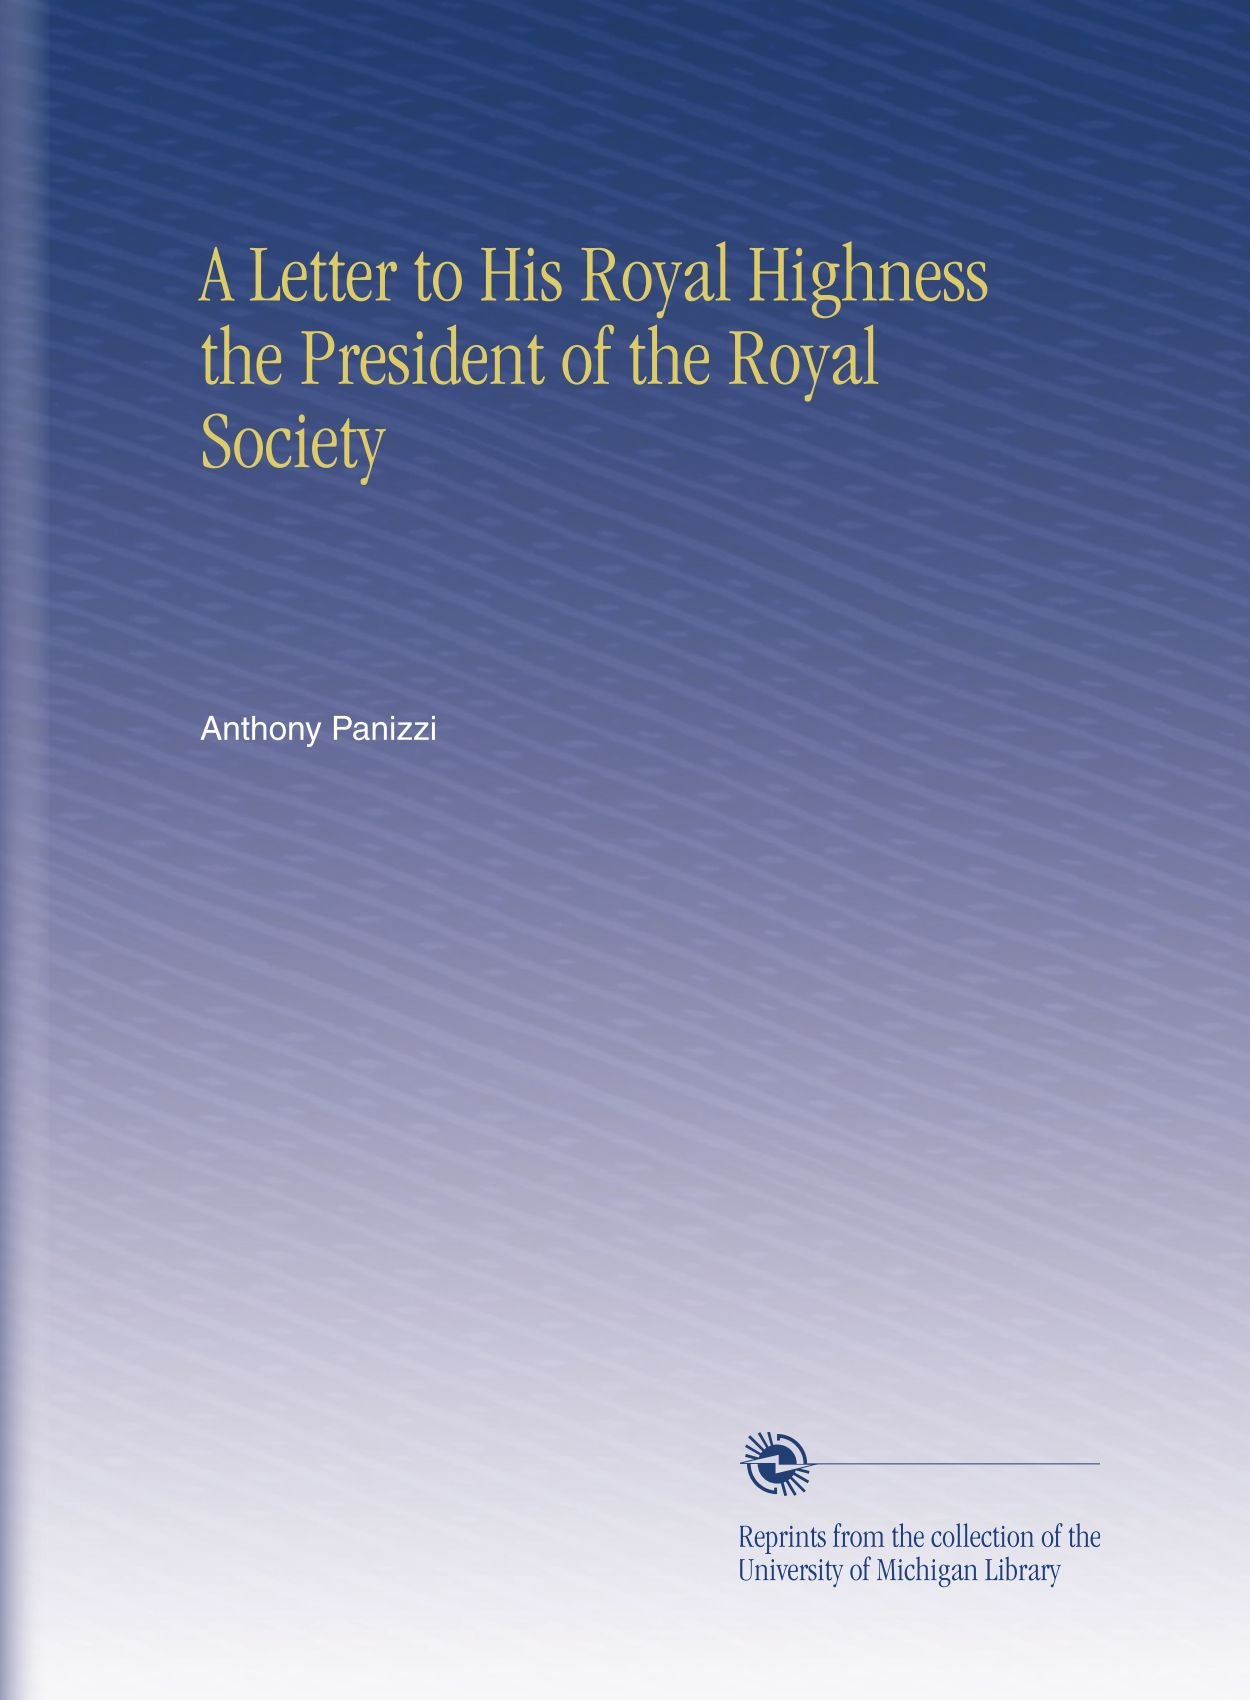 Download A Letter to His Royal Highness the President of the Royal Society ebook